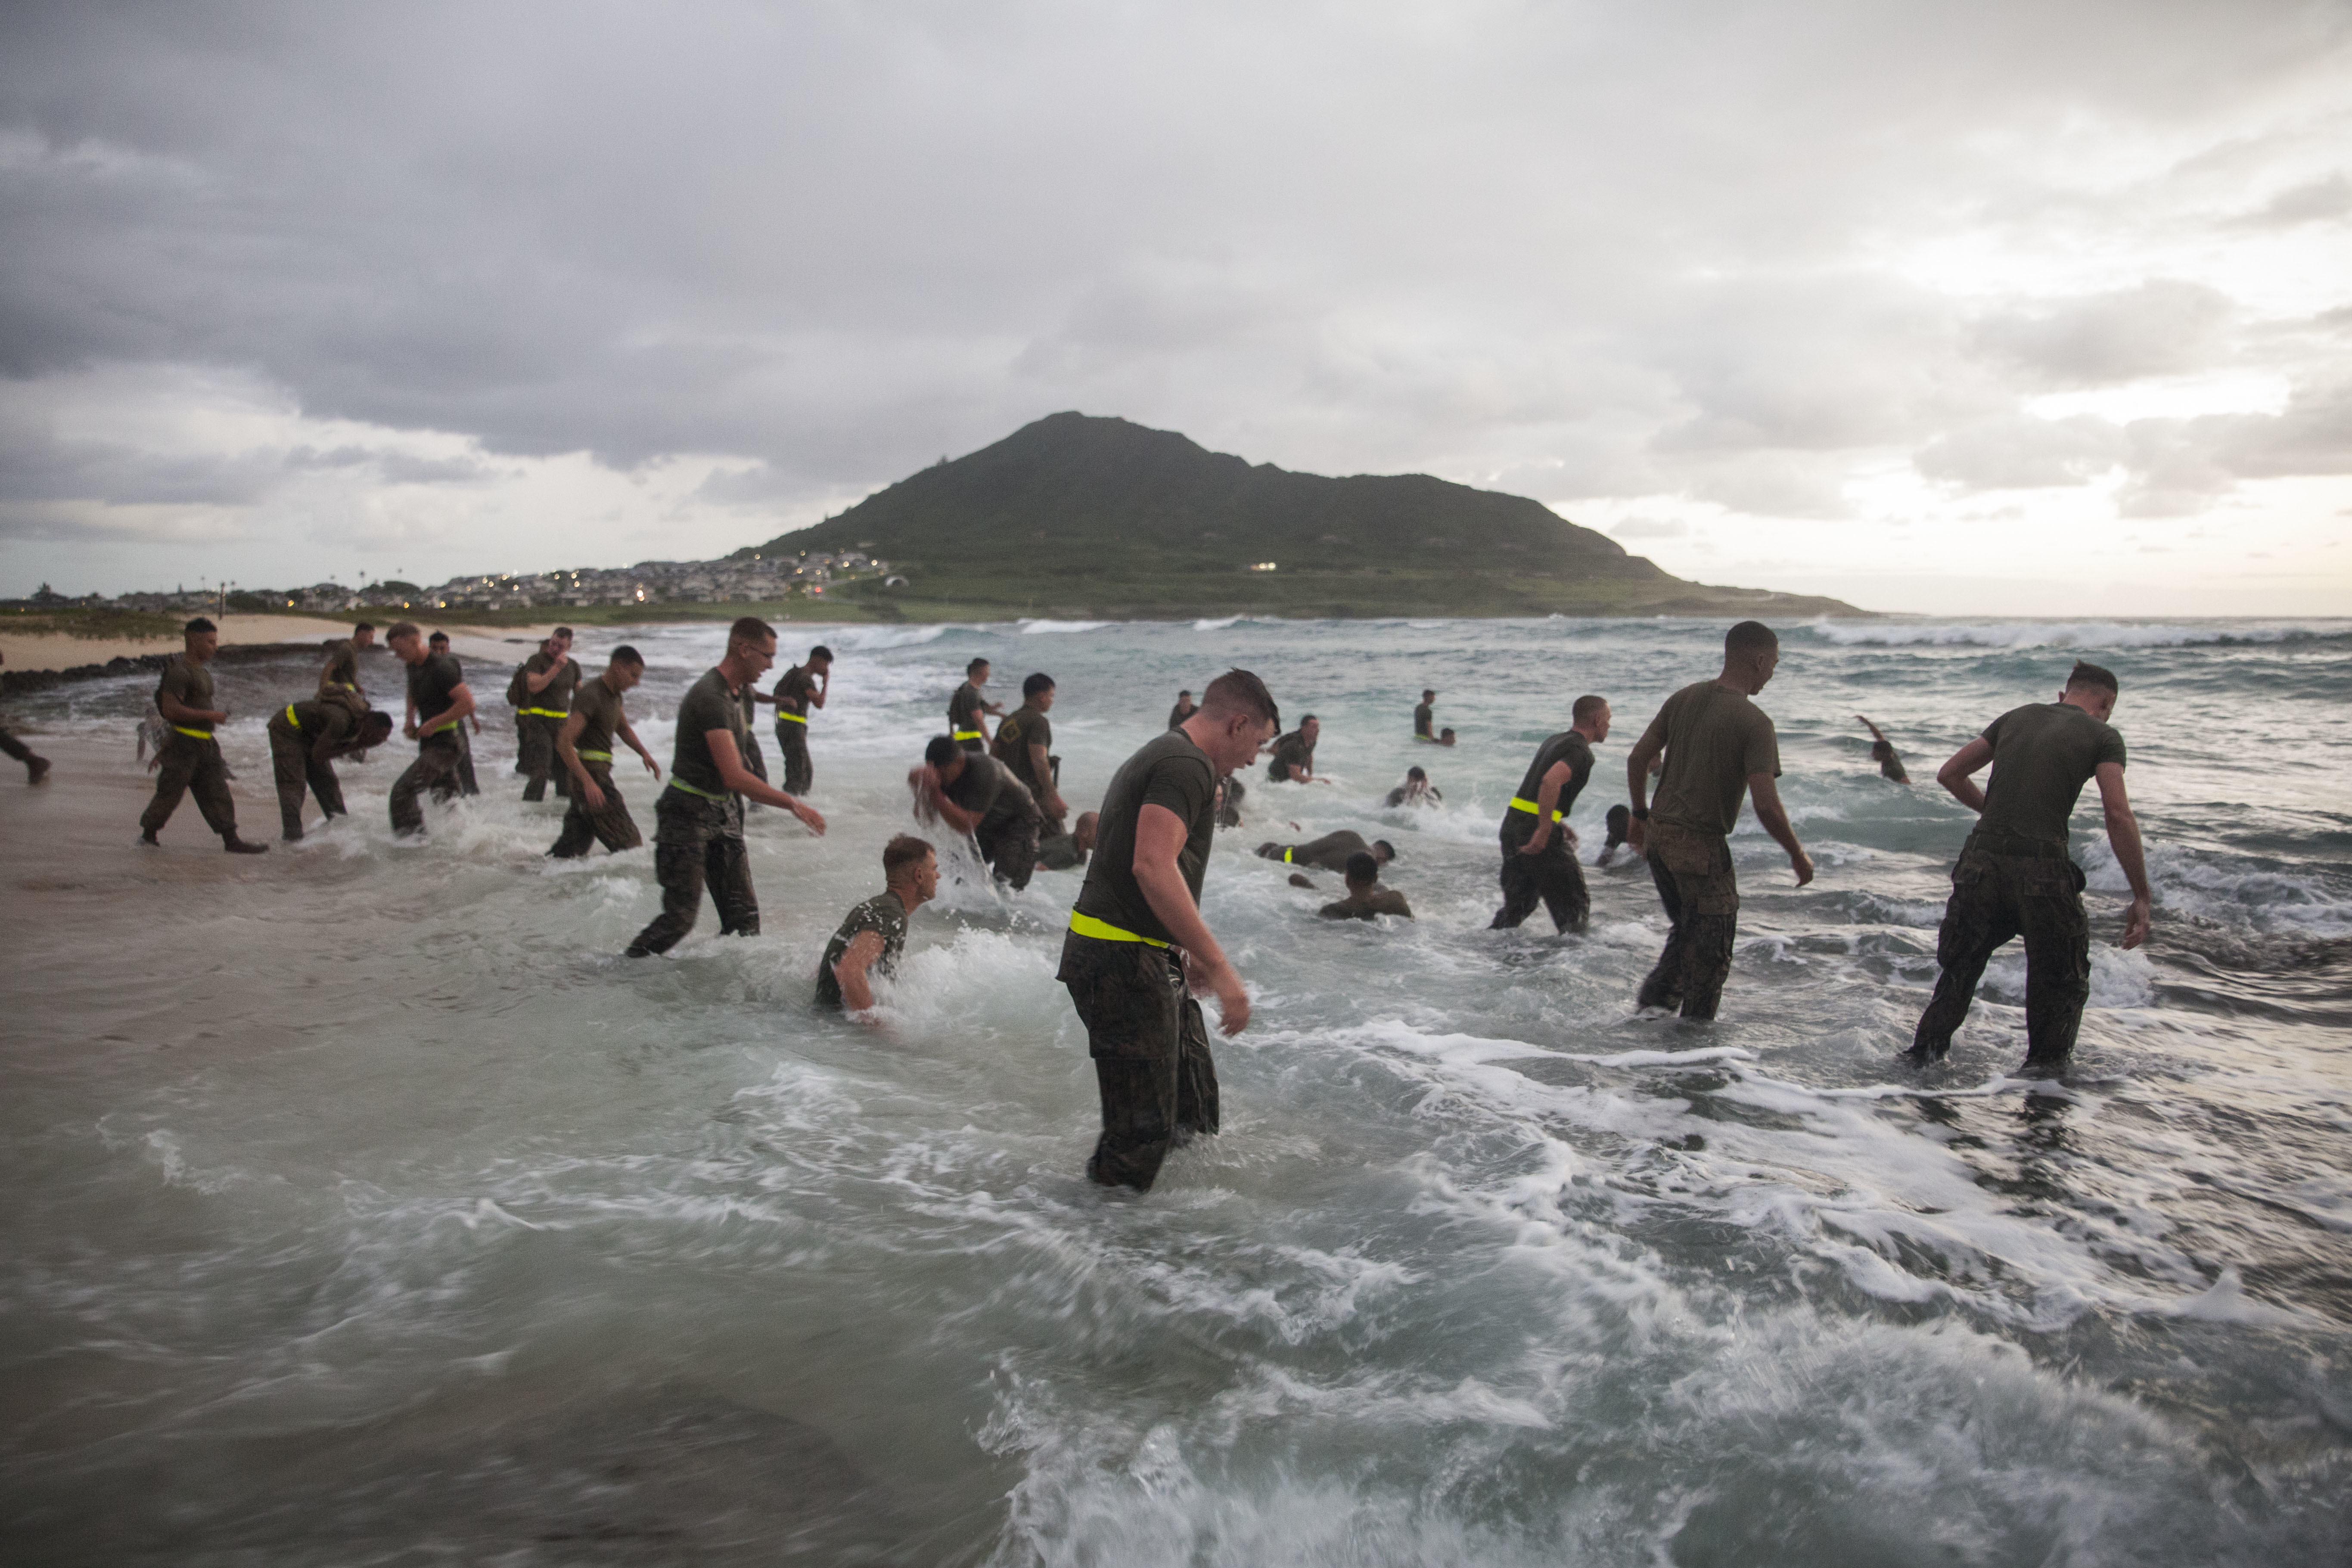 U.S. Marines with Combat Assault Company (CAC), 3rd Marine Regiment, wash off sand in the Pacific ocean after conducting ground fighting in conjunction with the 74th anniversary of the Battle of Tarawa, Fort Hase Beach, Marine Corps Base Hawaii (MCBH). (Cpl. Jesus Sepulveda Torres/Marine Corps)